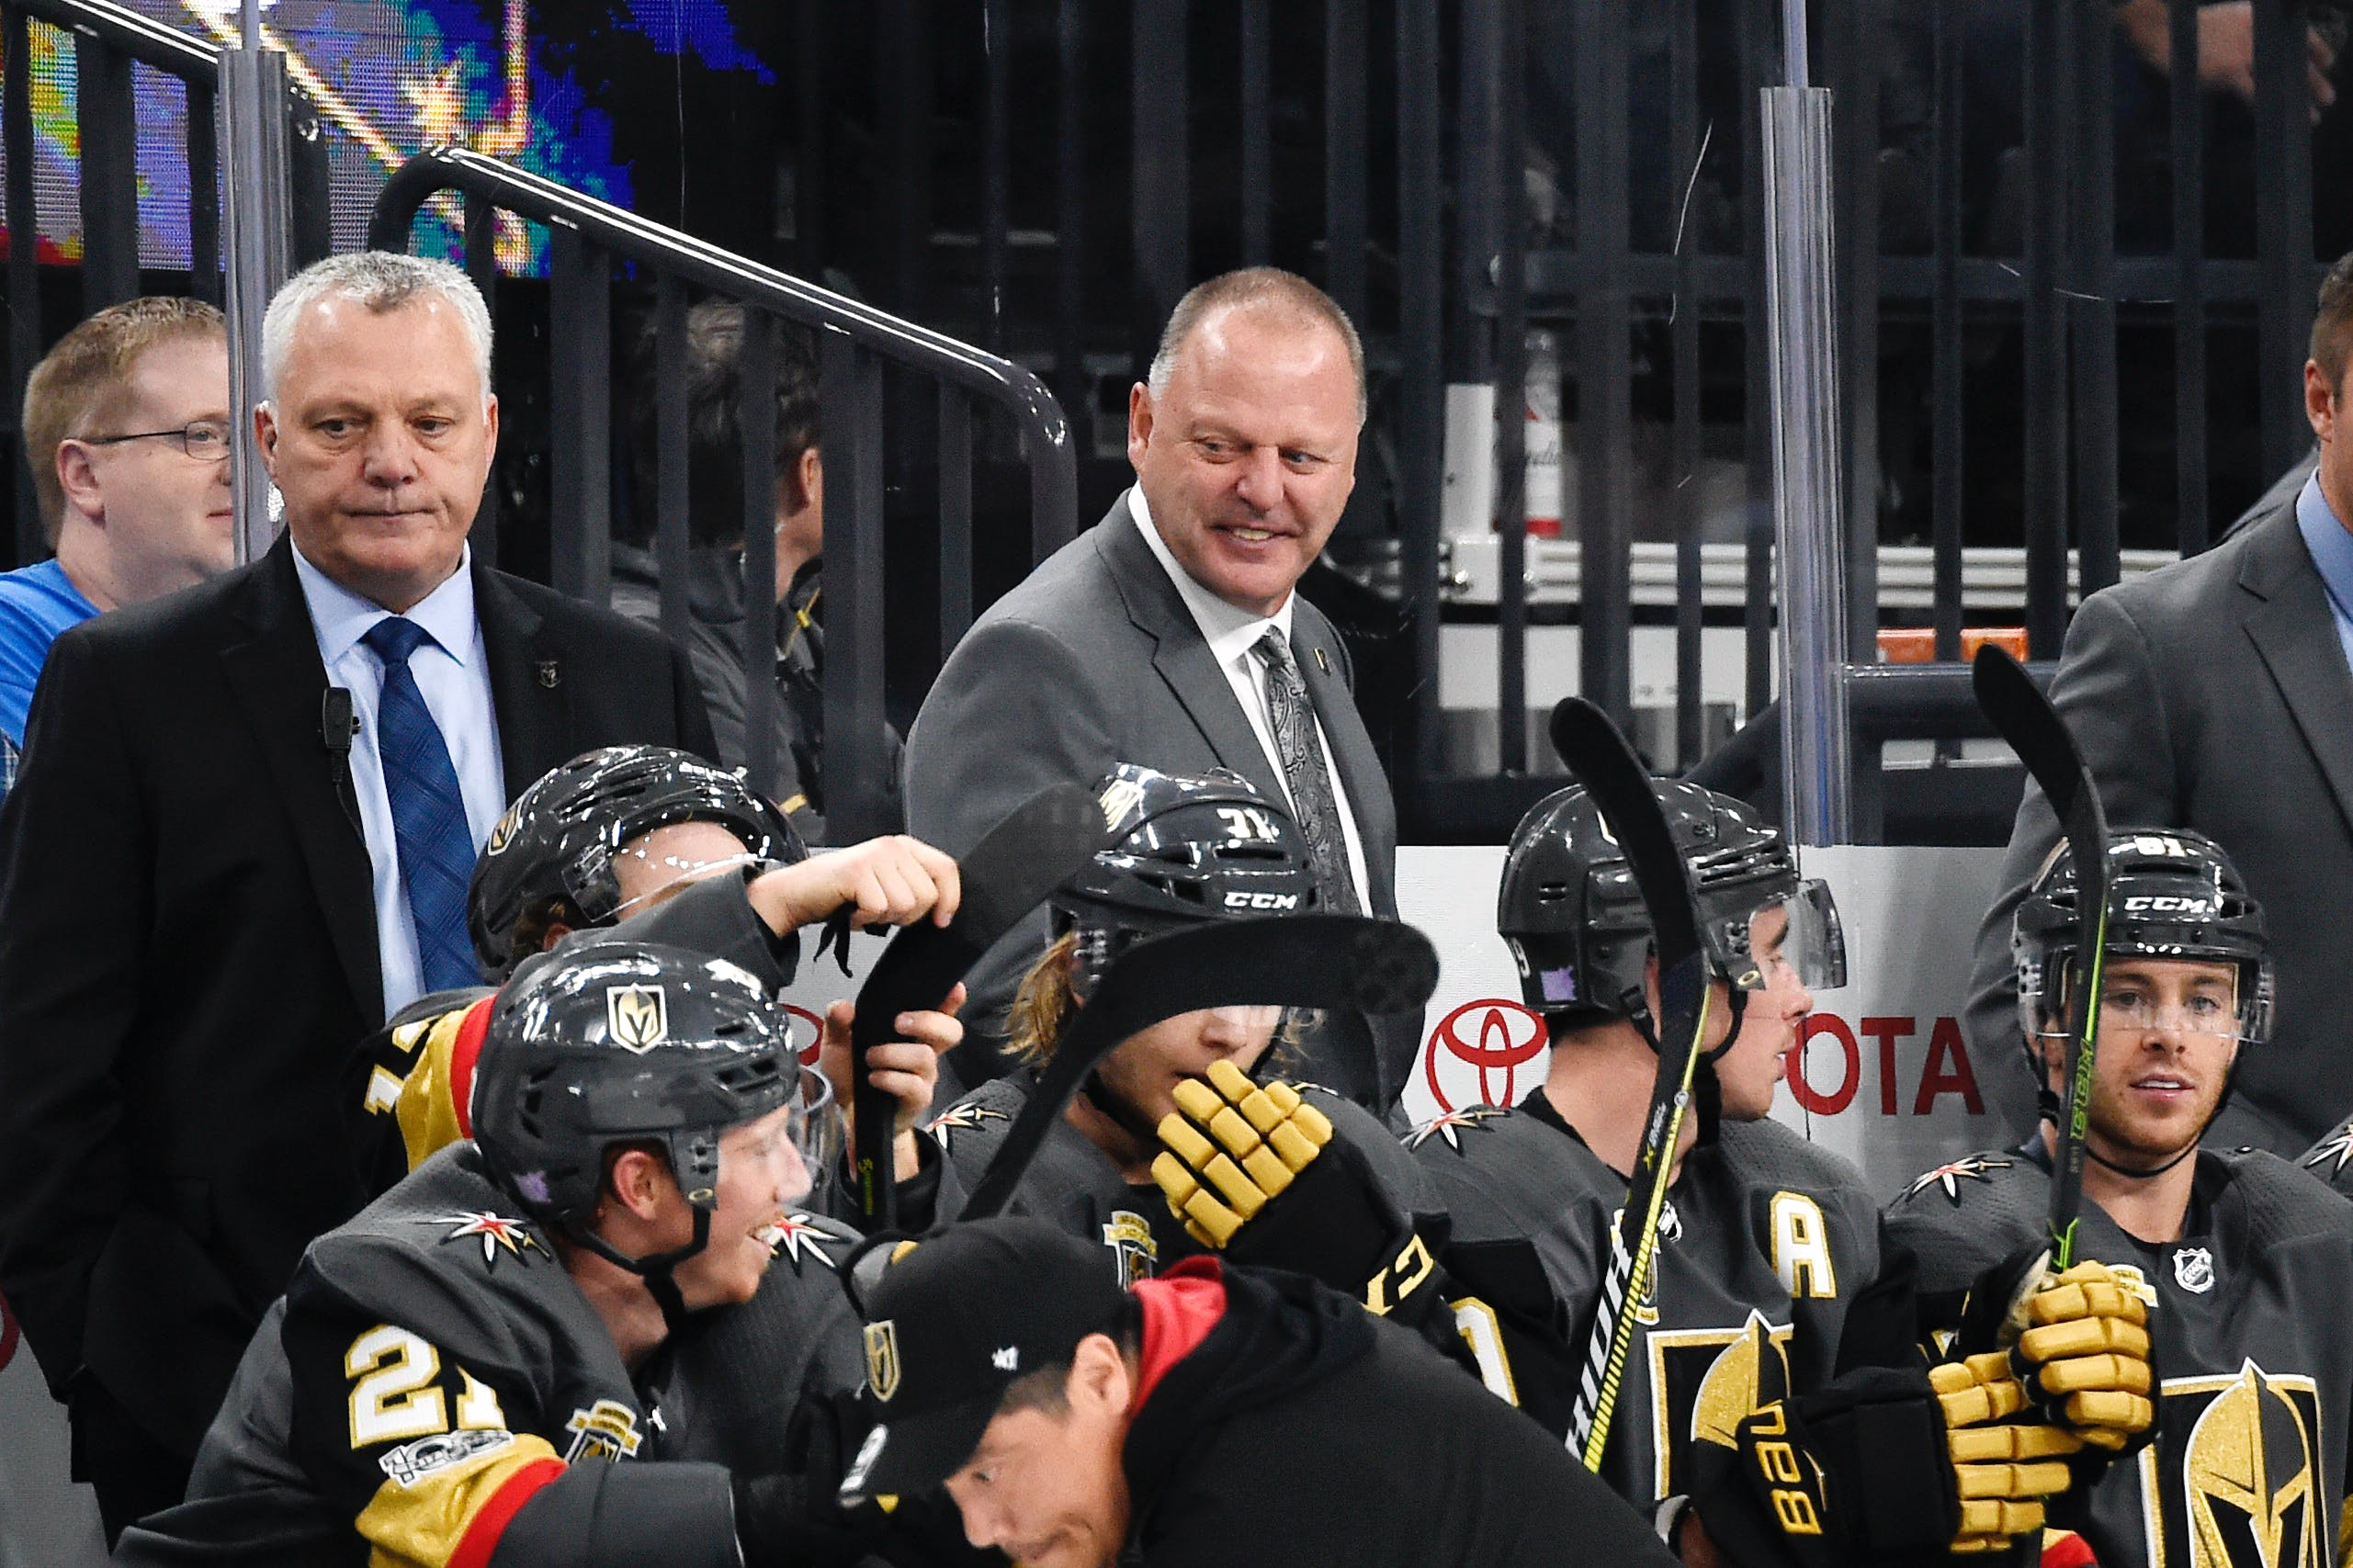 Photo Courtesy Vegas Golden Knights Mike Kelly, left, and Gerard (Turk) Gallant behind the bench of the Vegas Golden Knights. Gallant, who was head coach, and Kelly, an assistant coach, were with the National Hockey League team from 2017 to 2020.